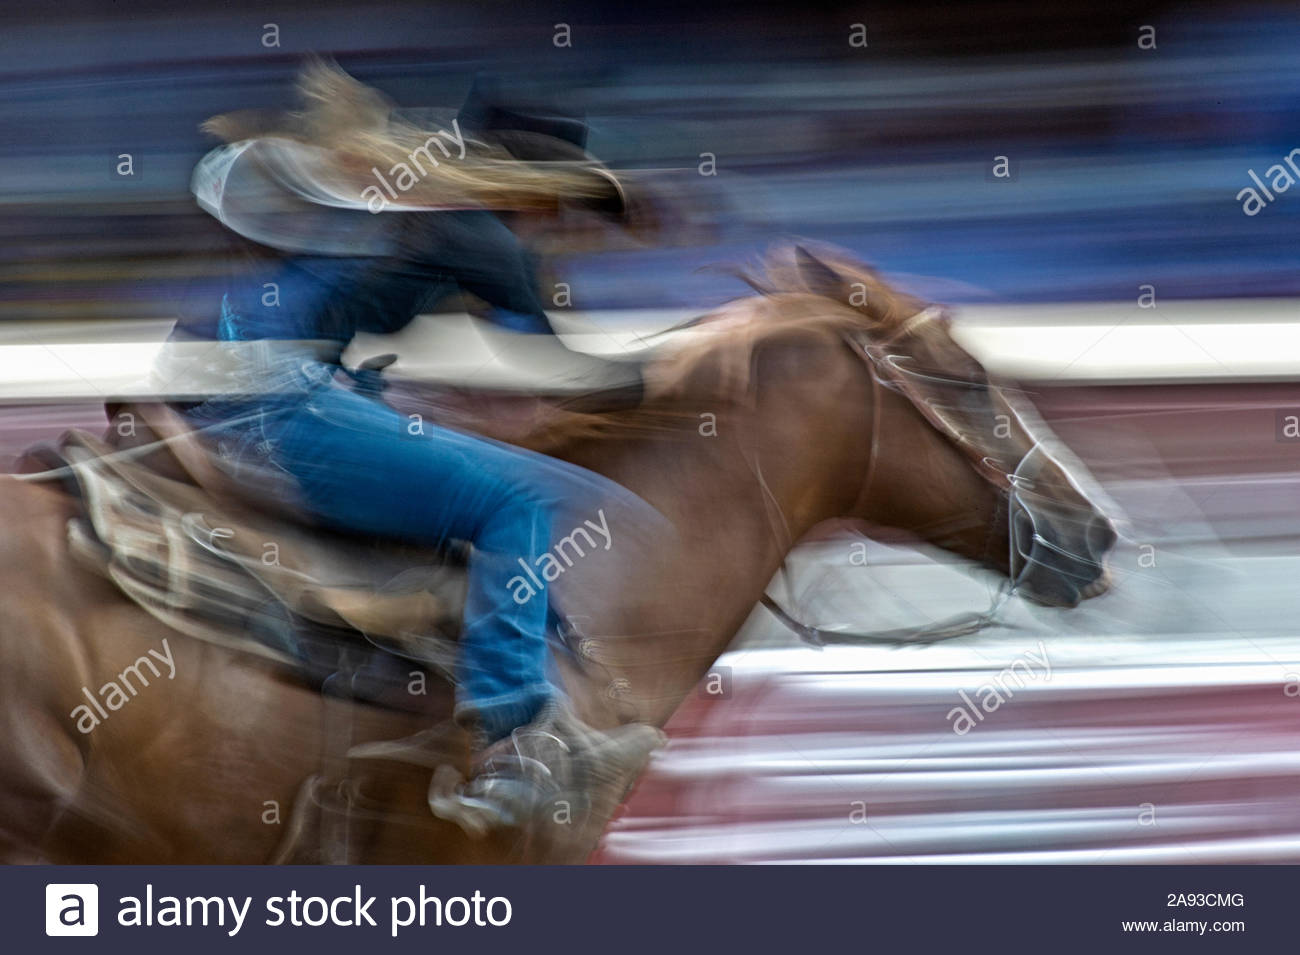 barrel-racer-at-the-calgary-stampede-2A93CMG.jpg